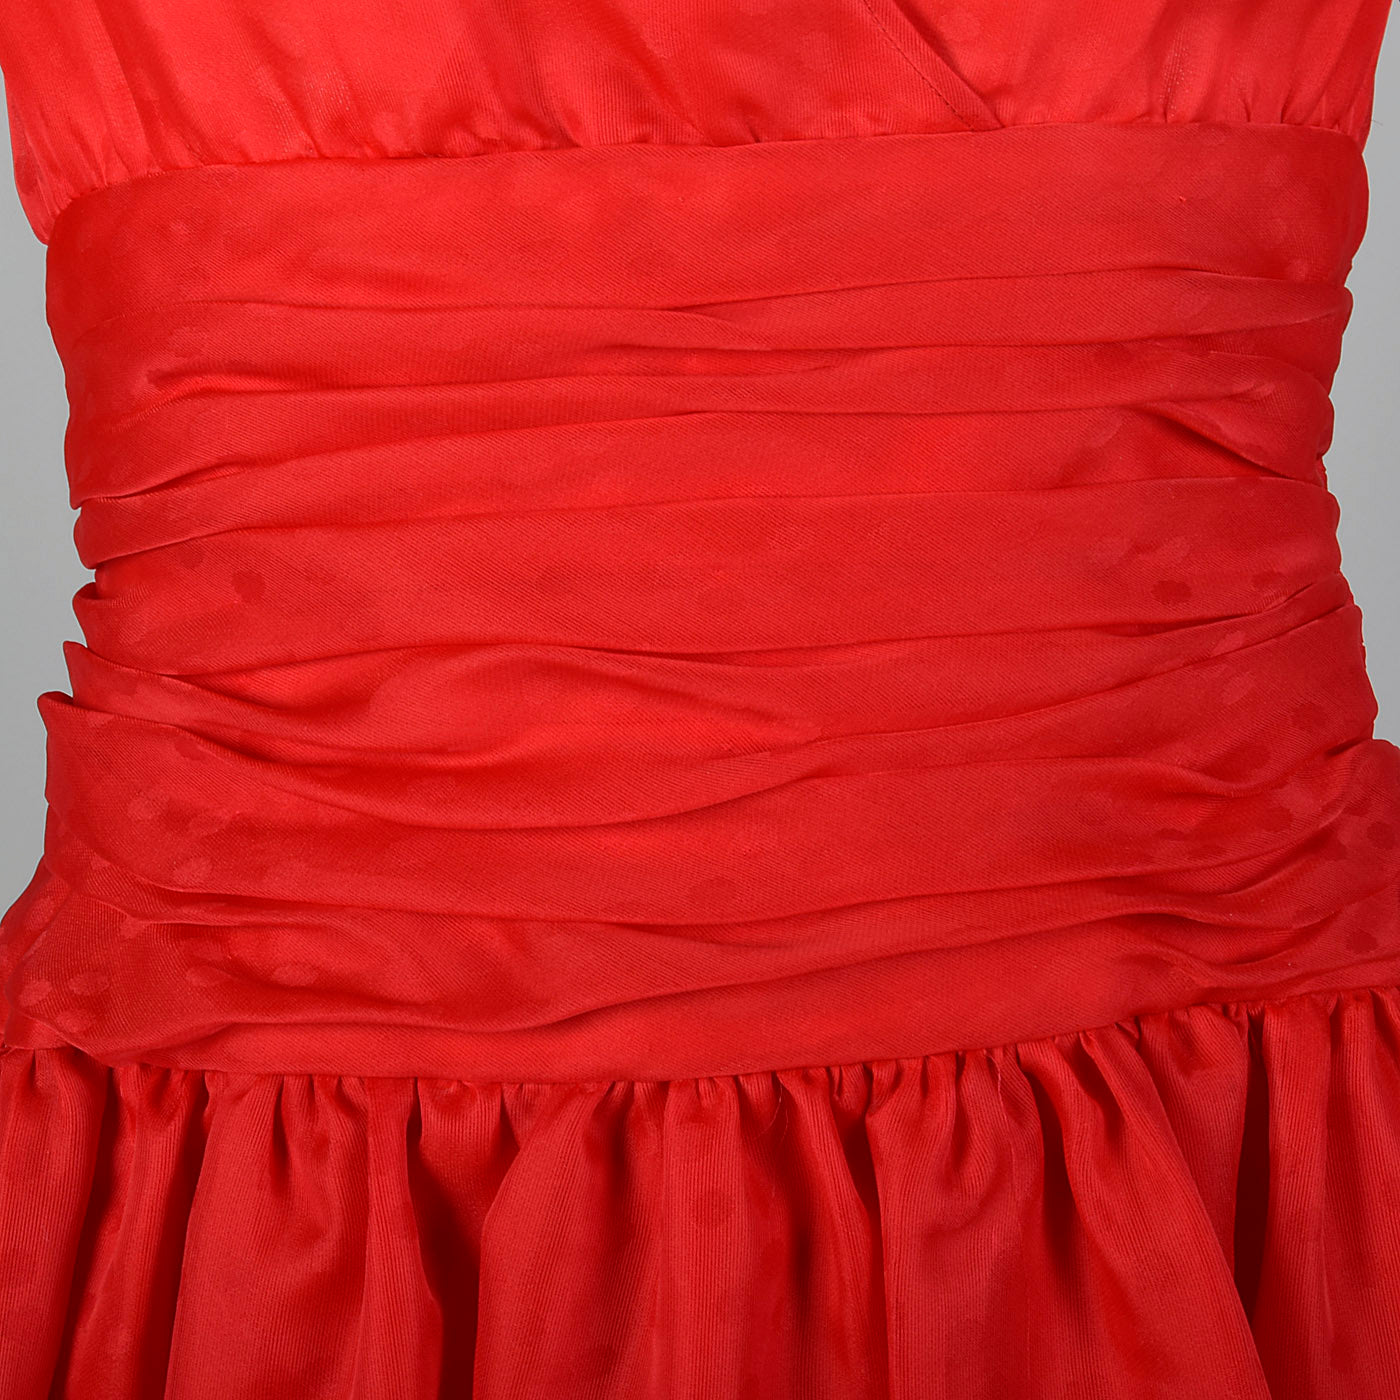 1980s Red Party Dress with Polka Dots